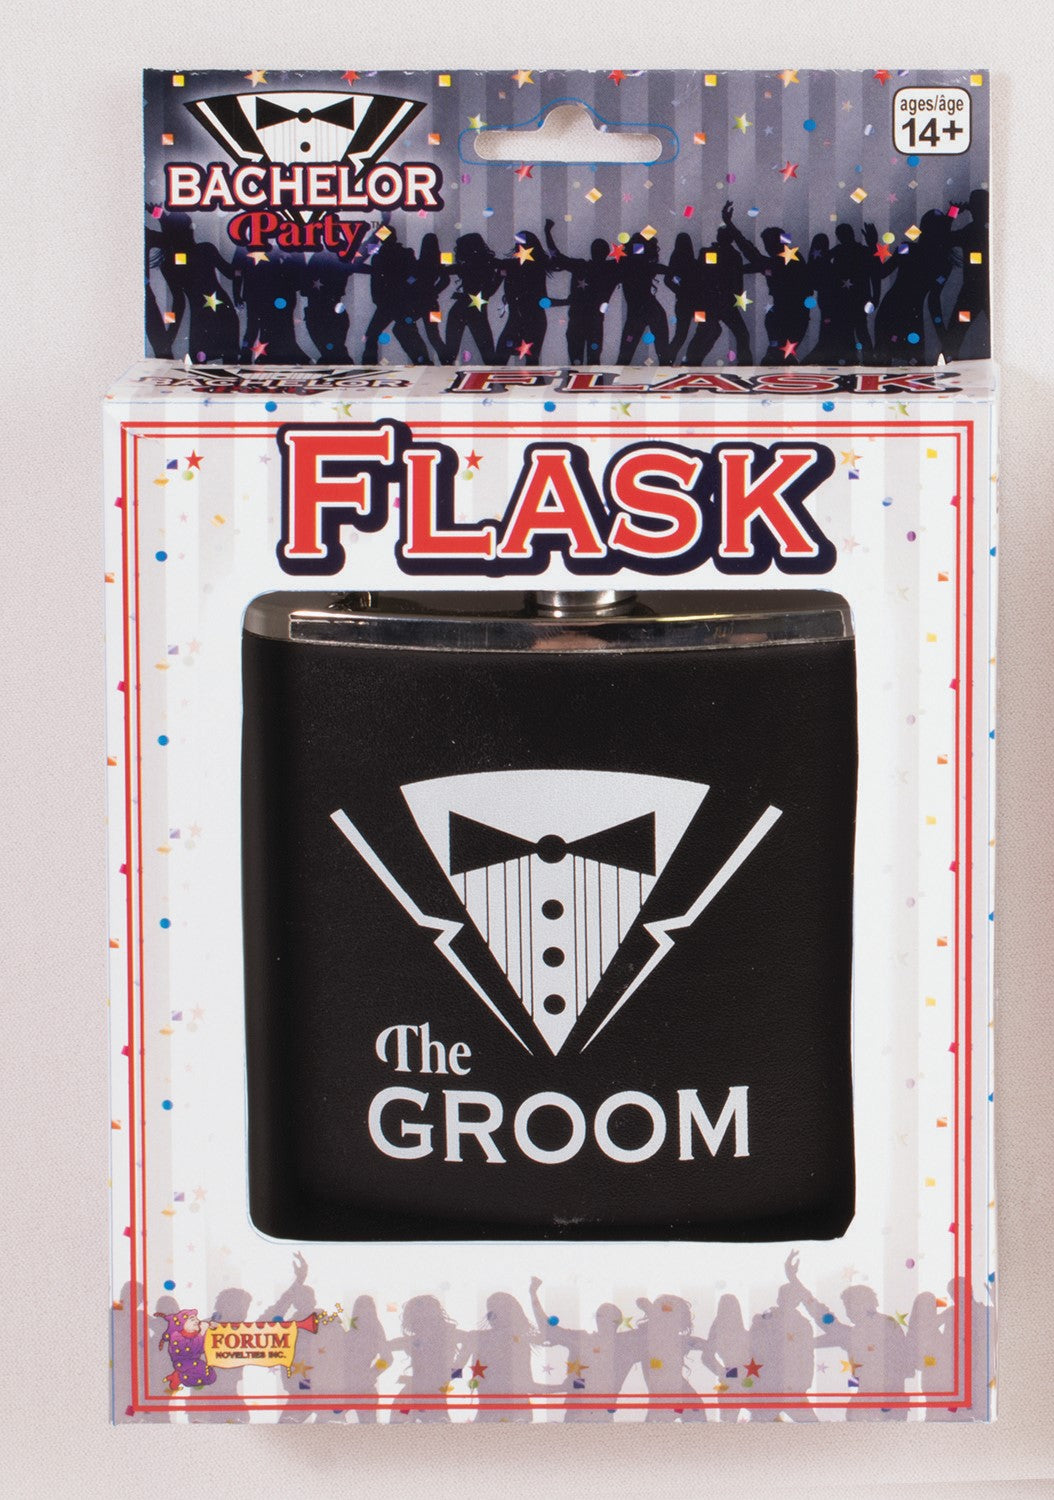 Bachelor Party Flask - Groom - Red Top Box